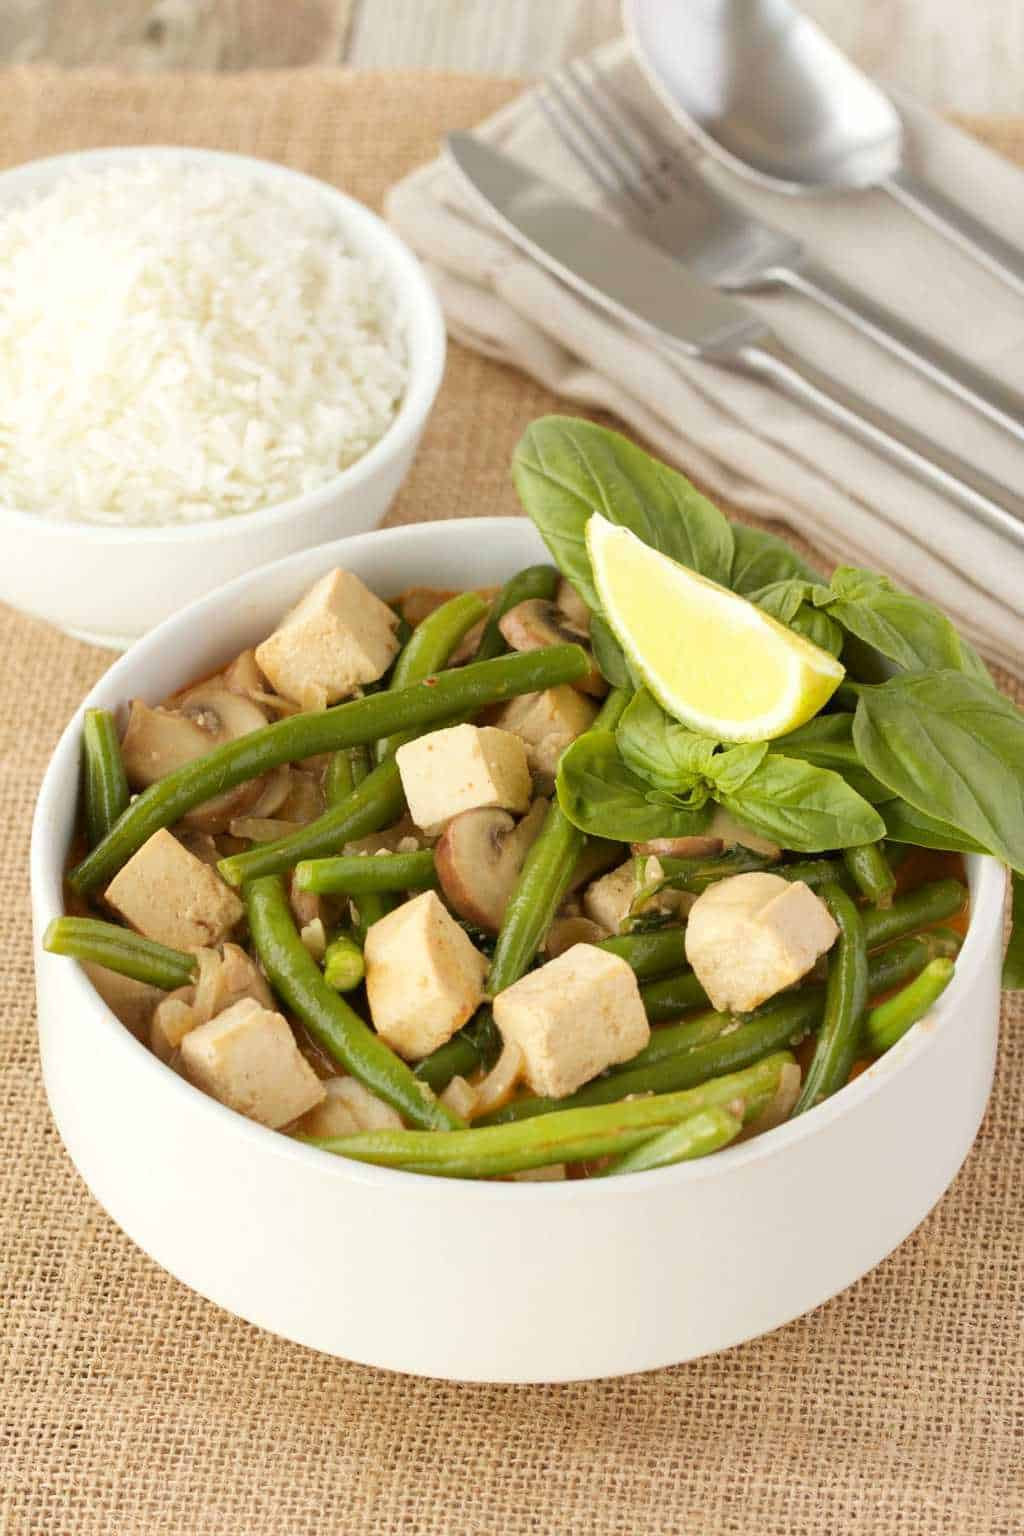 Thai red curry with green beans and tofu in a white bowl, a bowl of rice, cutlery and a napkin on the side.